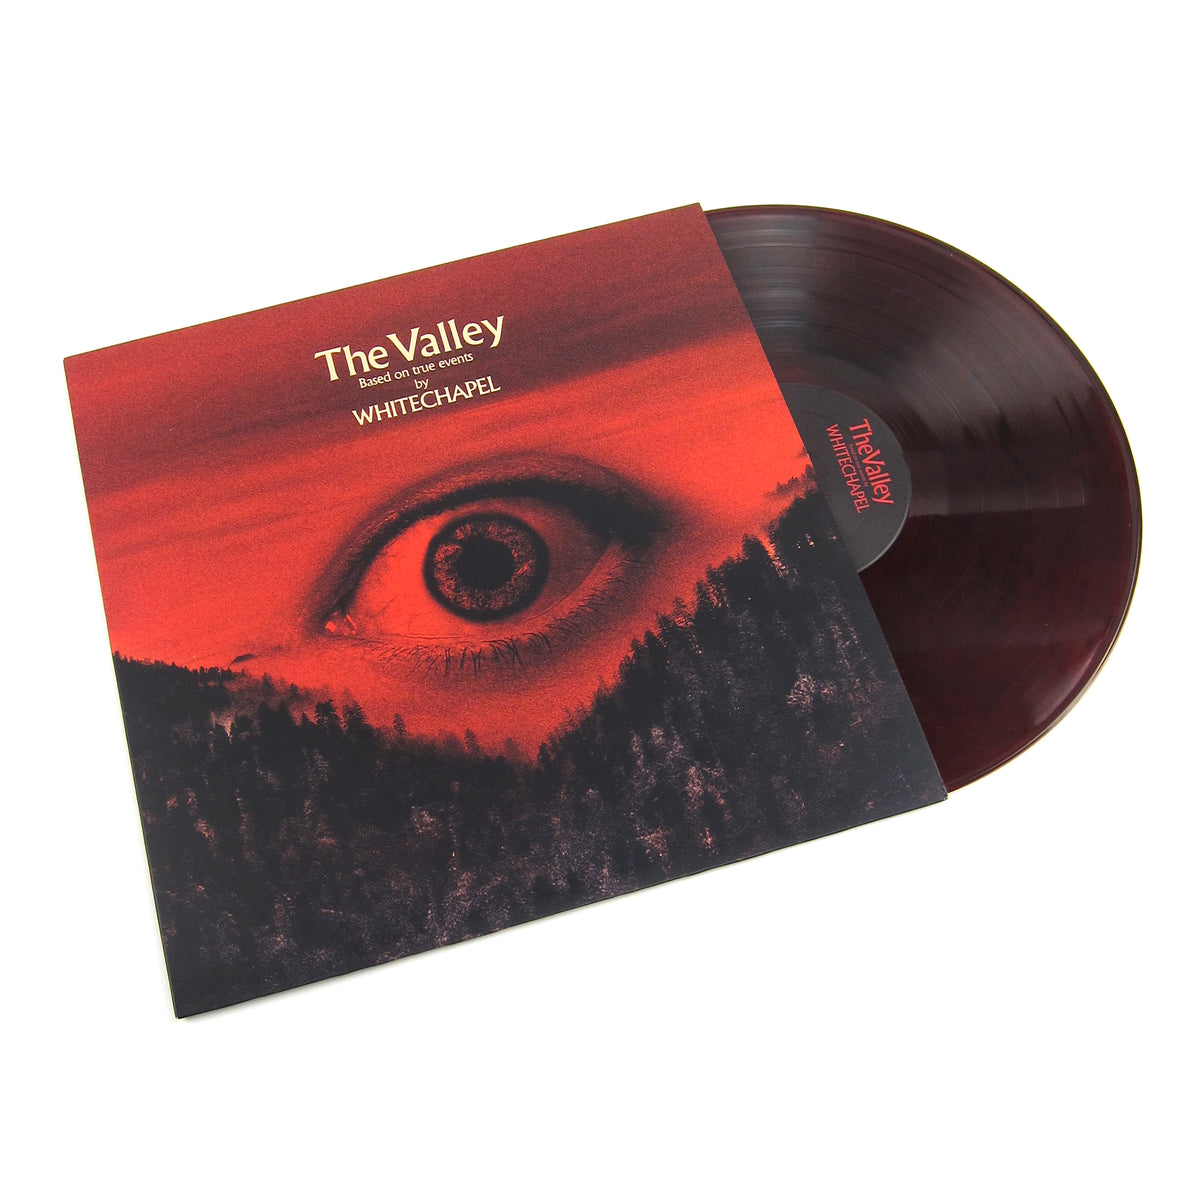 Whitechapel: The Valley (Indie Exclusive Colored Vinyl) Vinyl LP